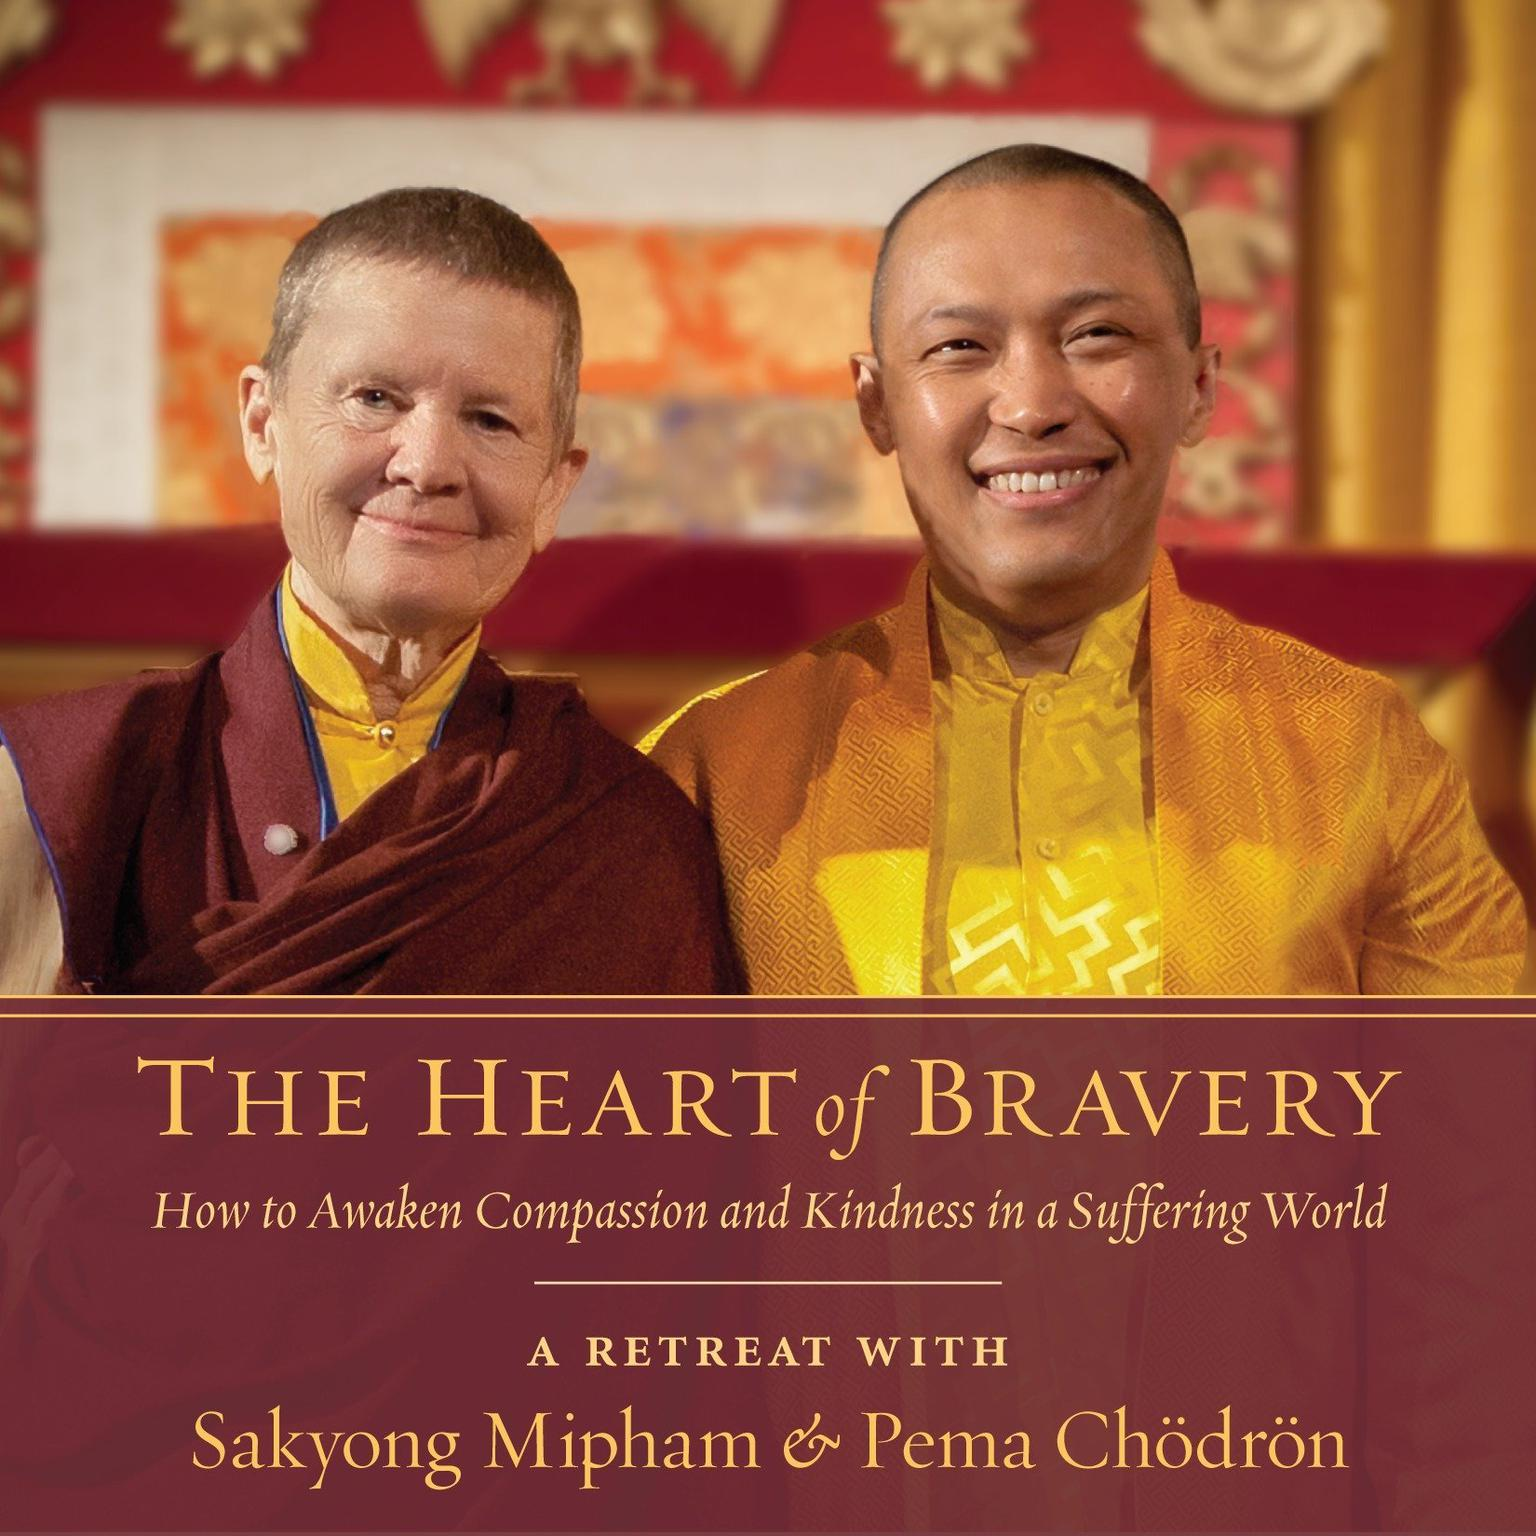 Printable The Heart of Bravery: A Retreat with Sakyong Mipham and Pema Chodron Audiobook Cover Art